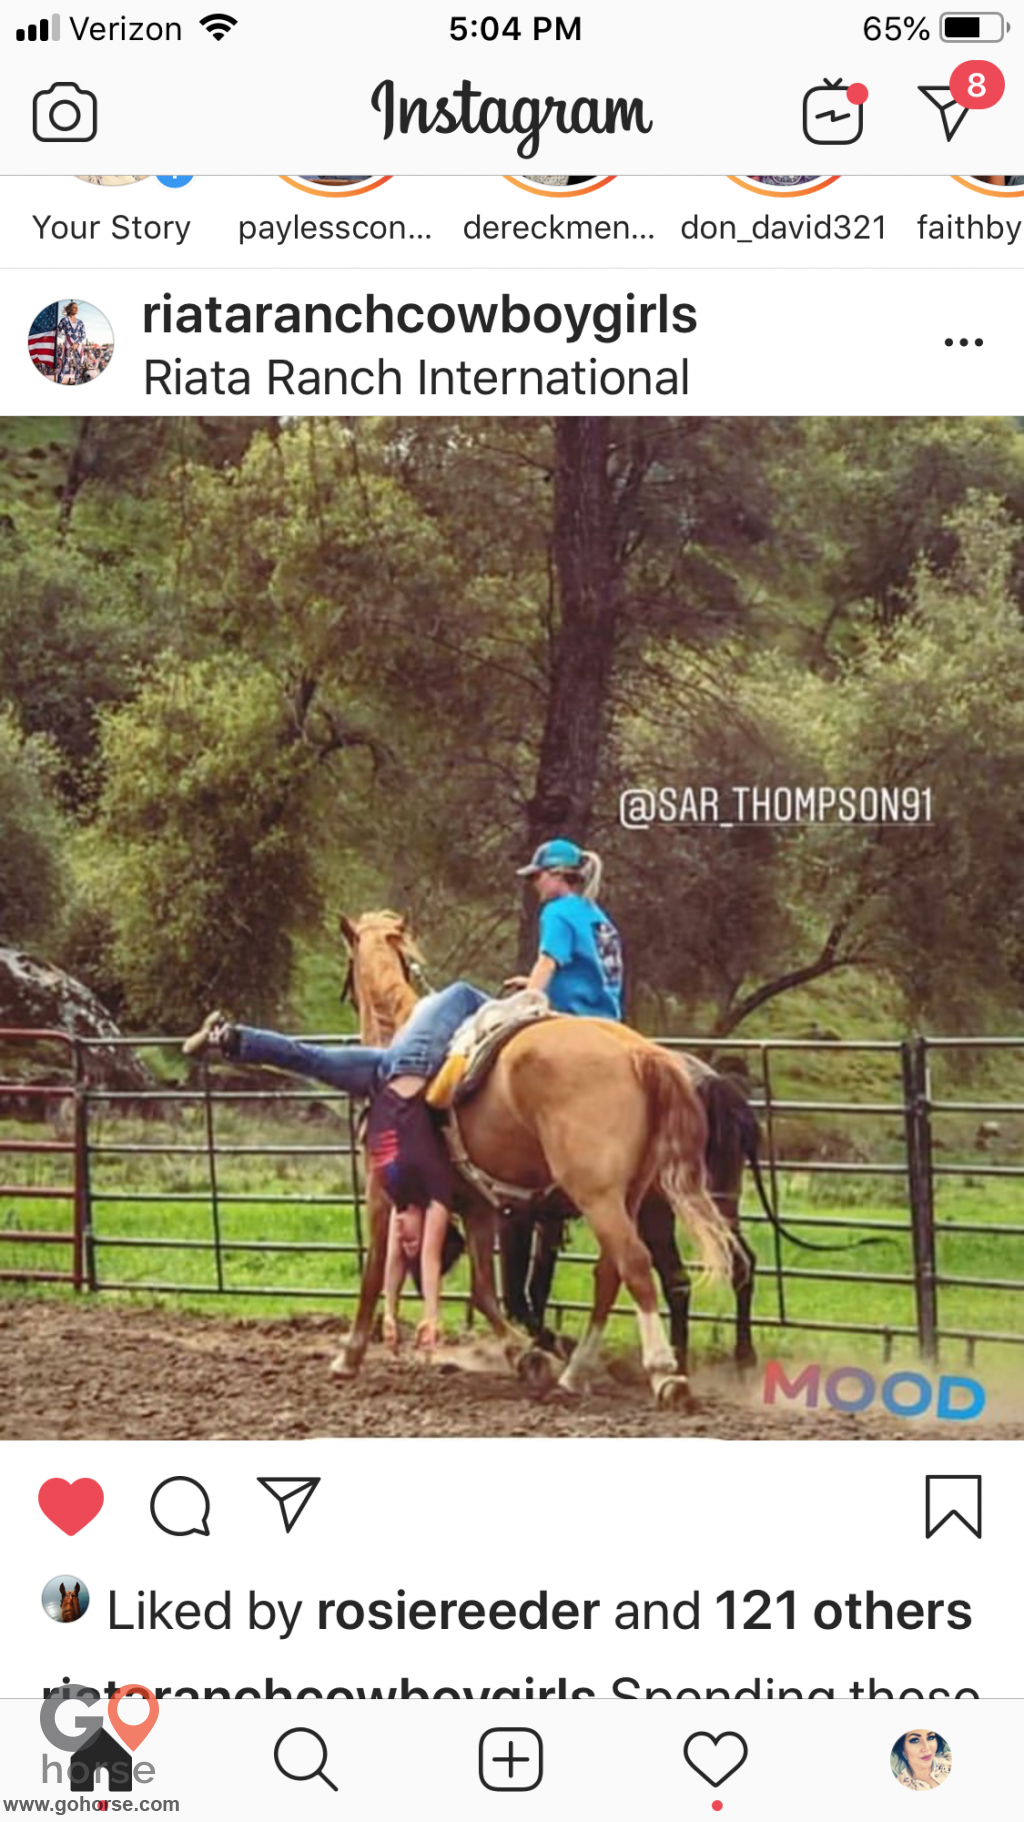 Riata Ranch International Horse stables in Three Rivers CA 1